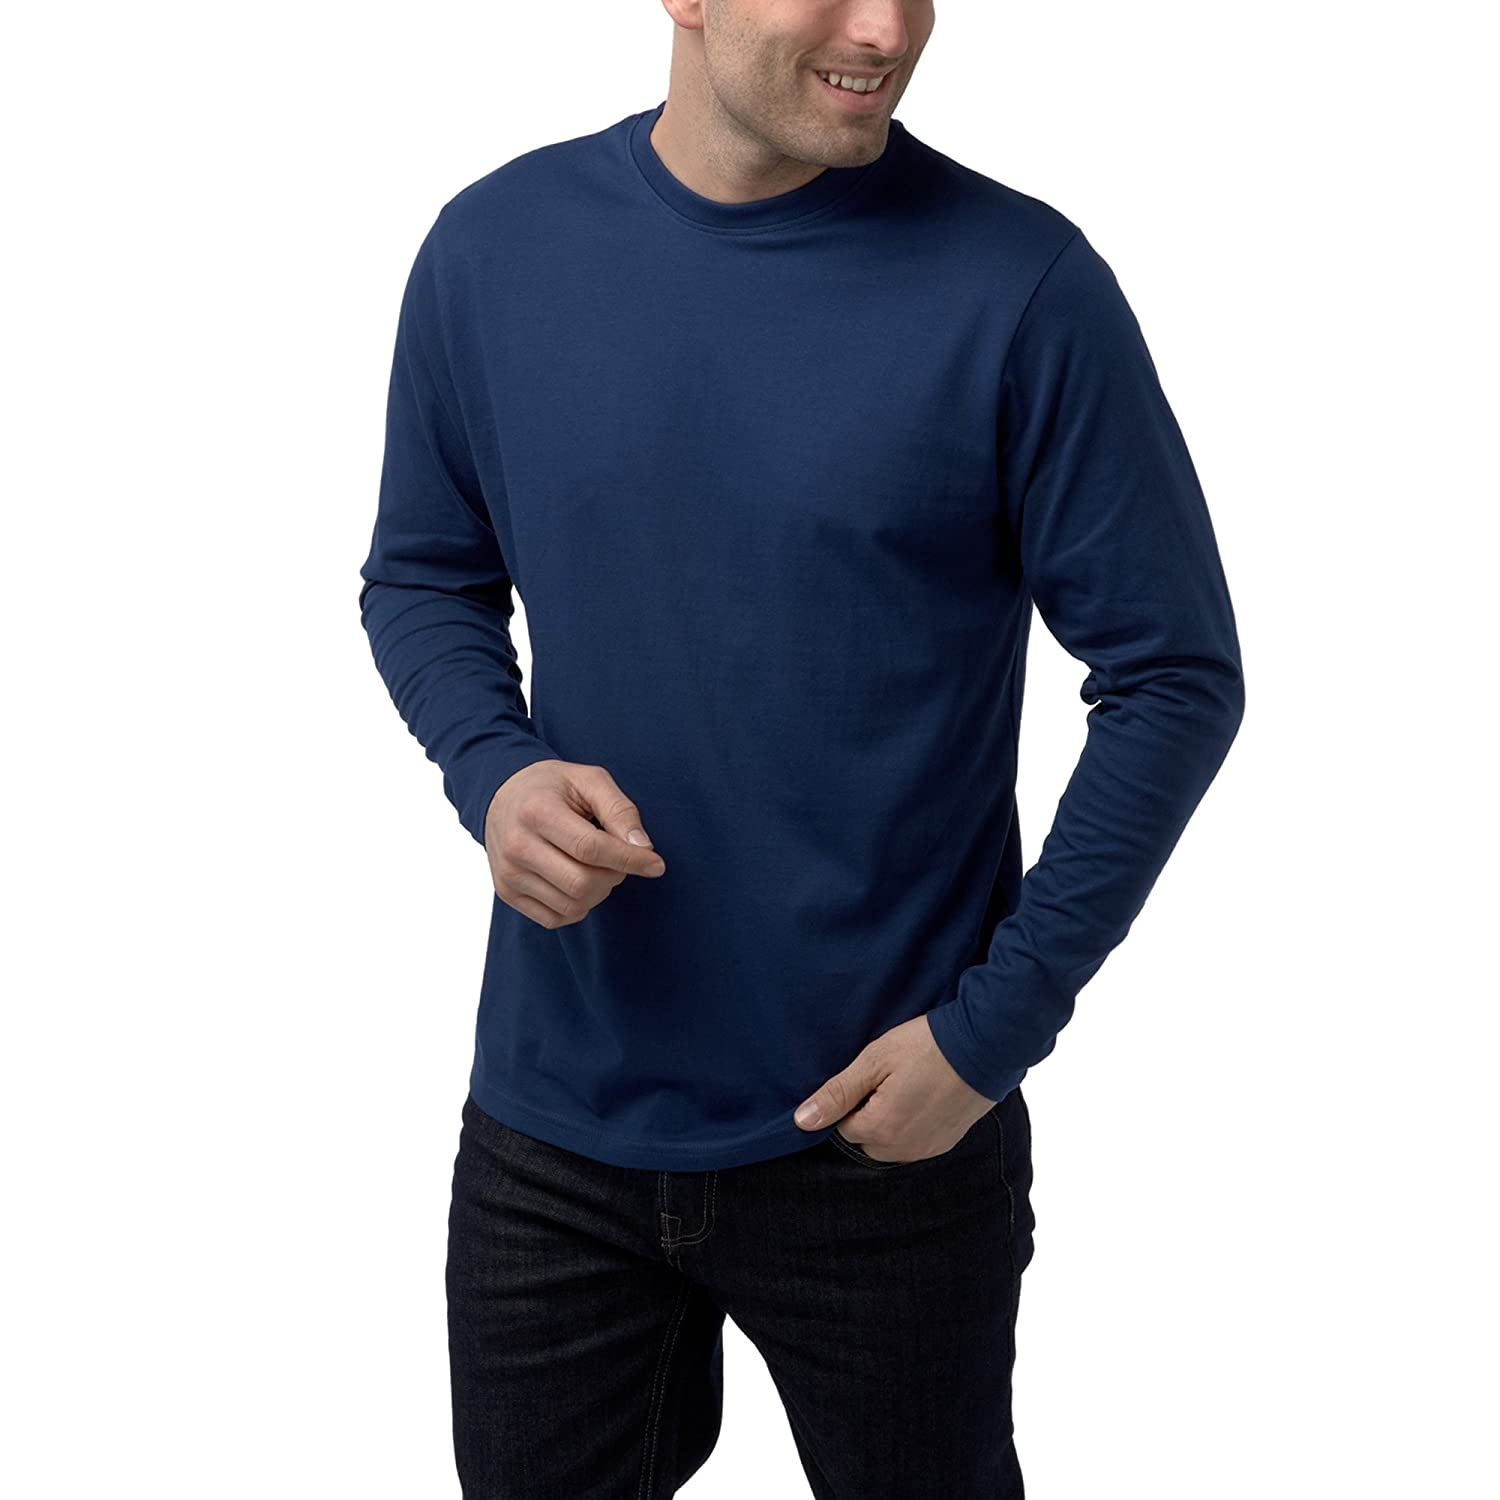 Charles Wilson Long Sleeved Plain Crew Neck T-Shirt